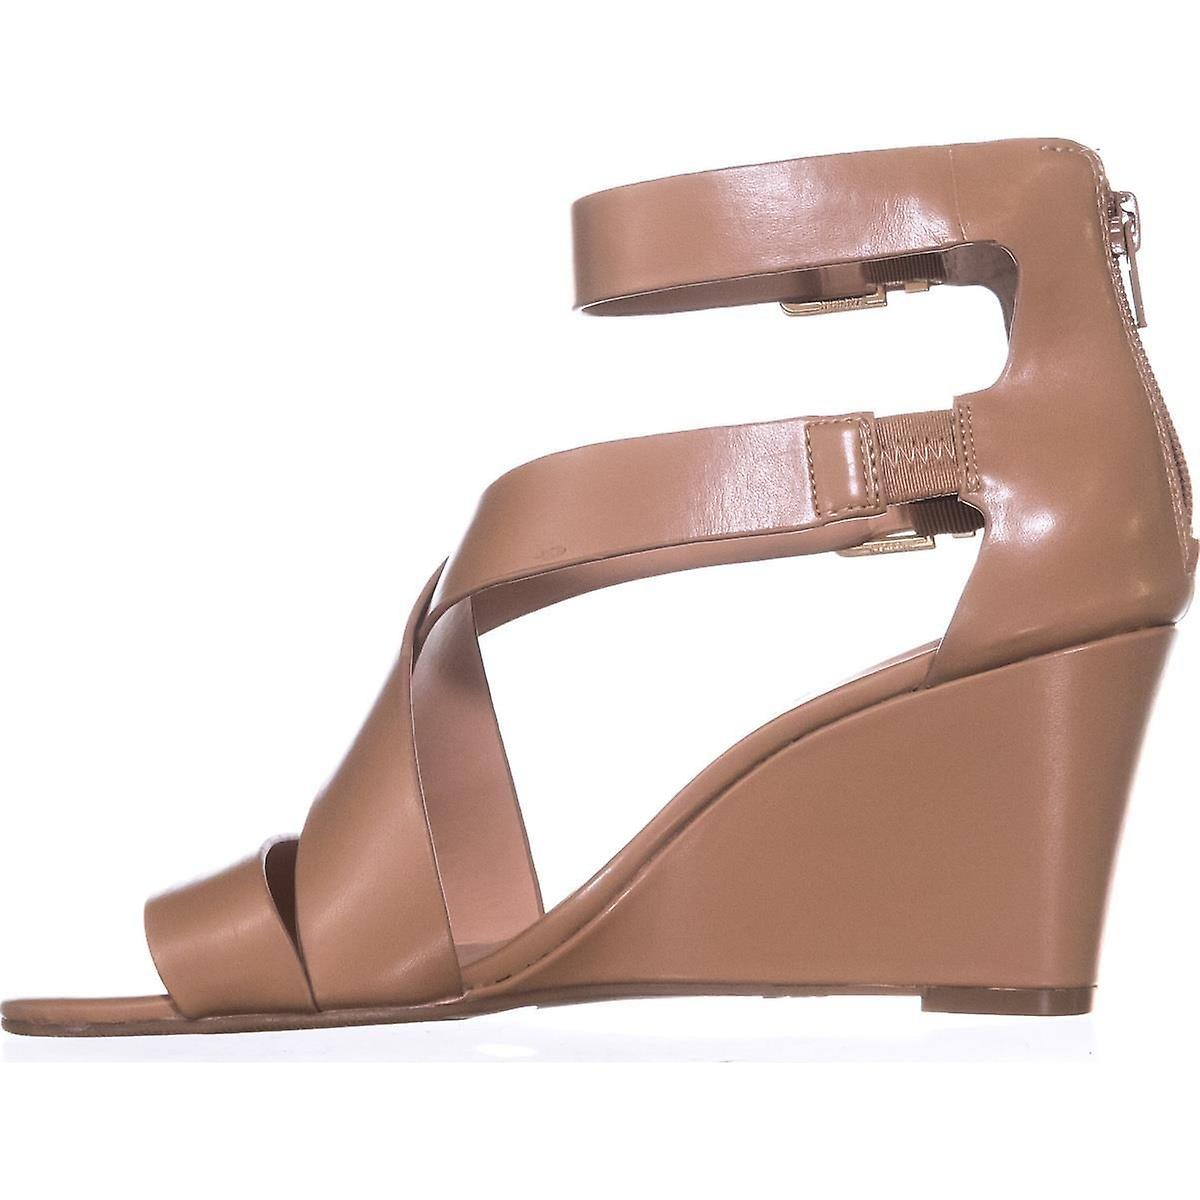 ba66380174c INC International Concepts Womens Rominia Open Toe Casual Ankle Strap  Sandals